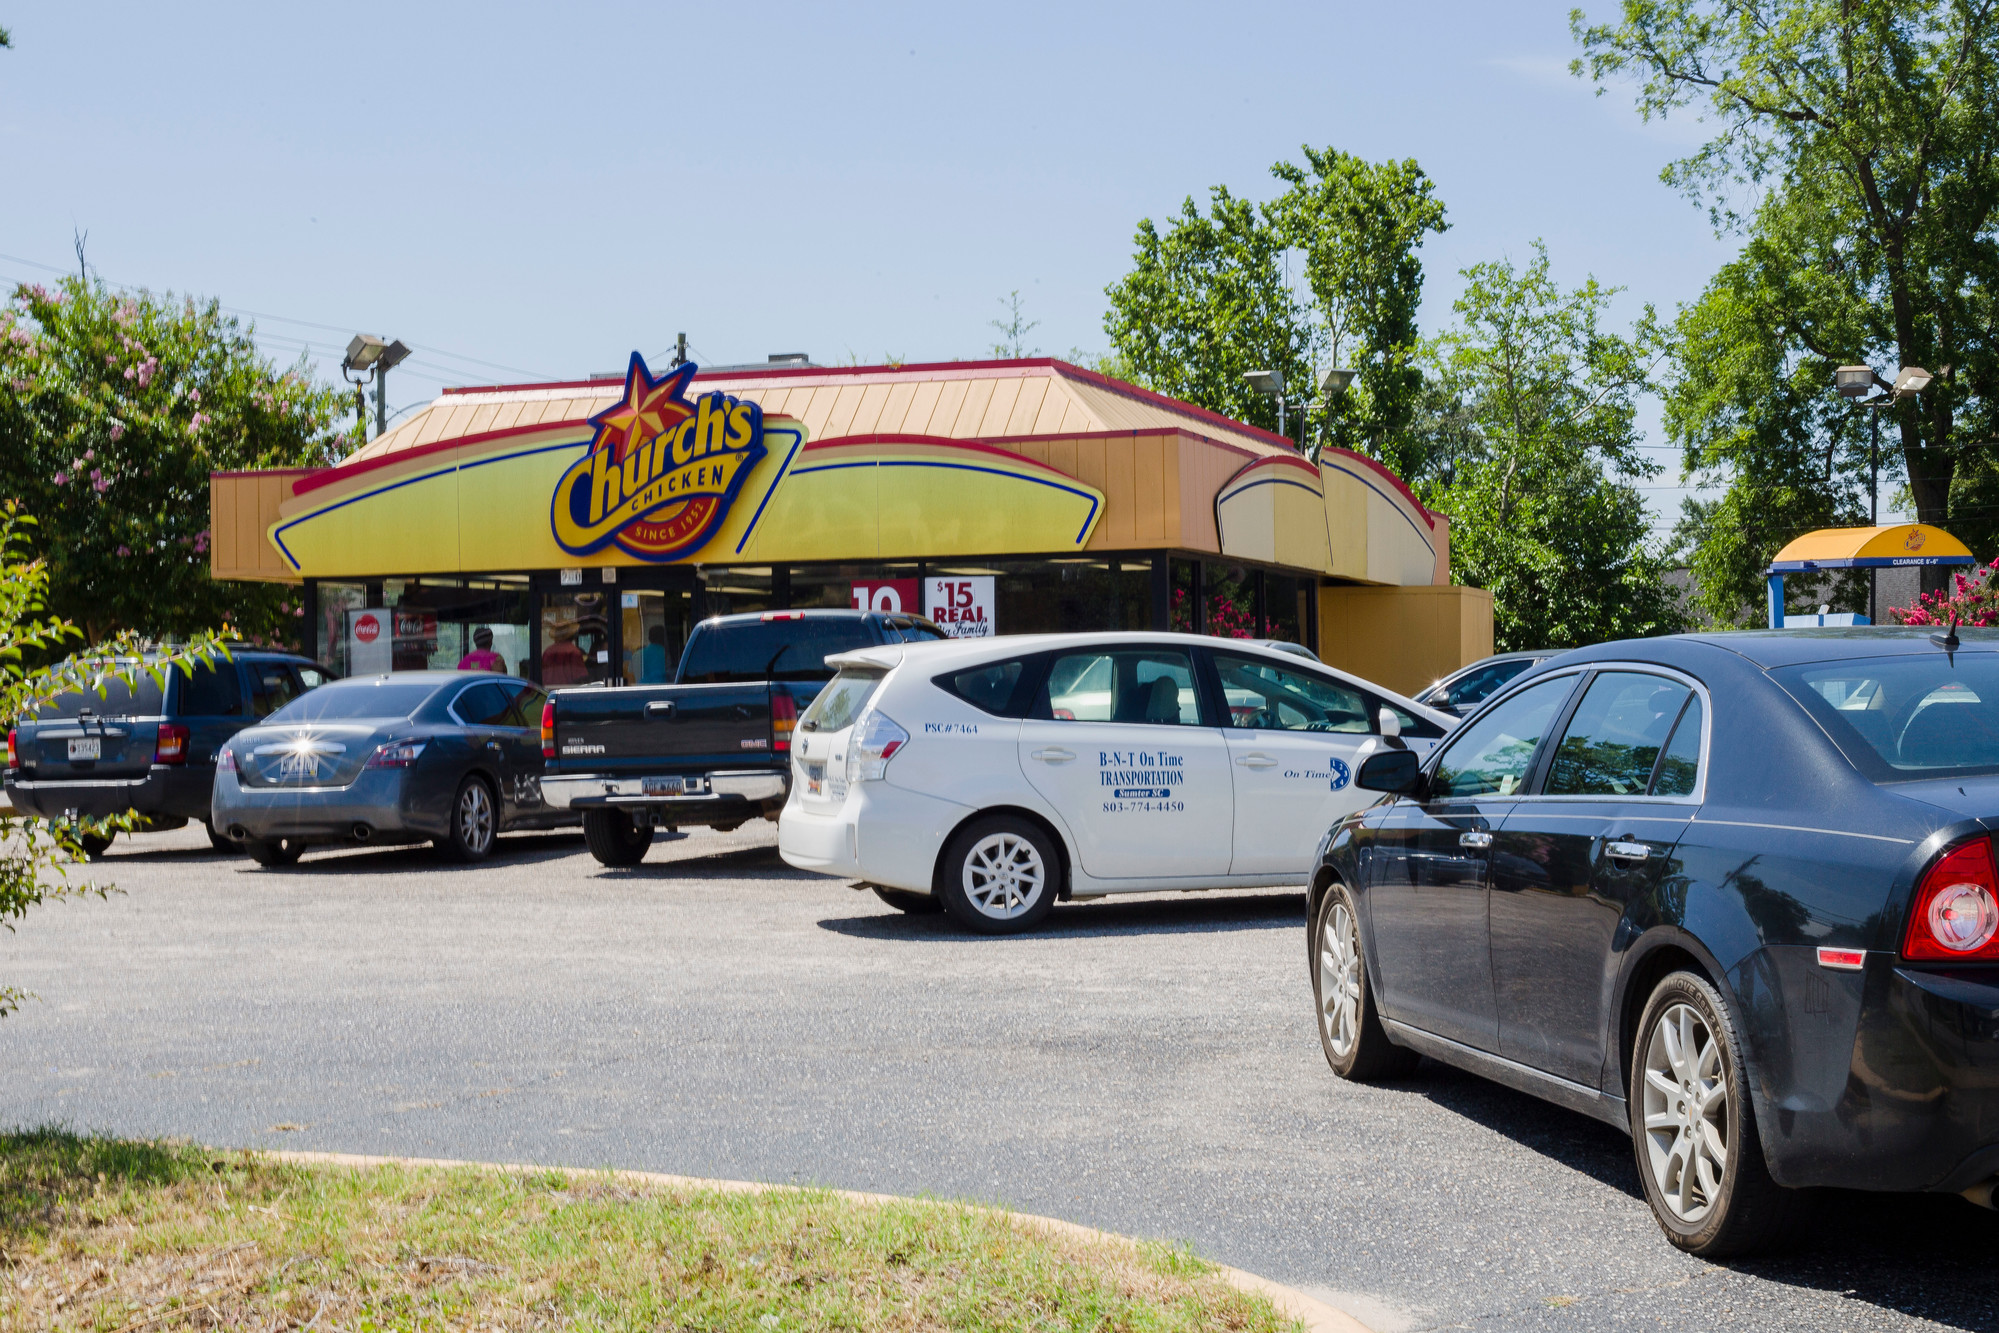 Church's Chicken, located at 202 W. Liberty St. in Sumter, has cars filling the parking lot and wrapping around the building to the street Friday. The fast food restaurant suddenly reopened Wednesday after being closed for about a year.